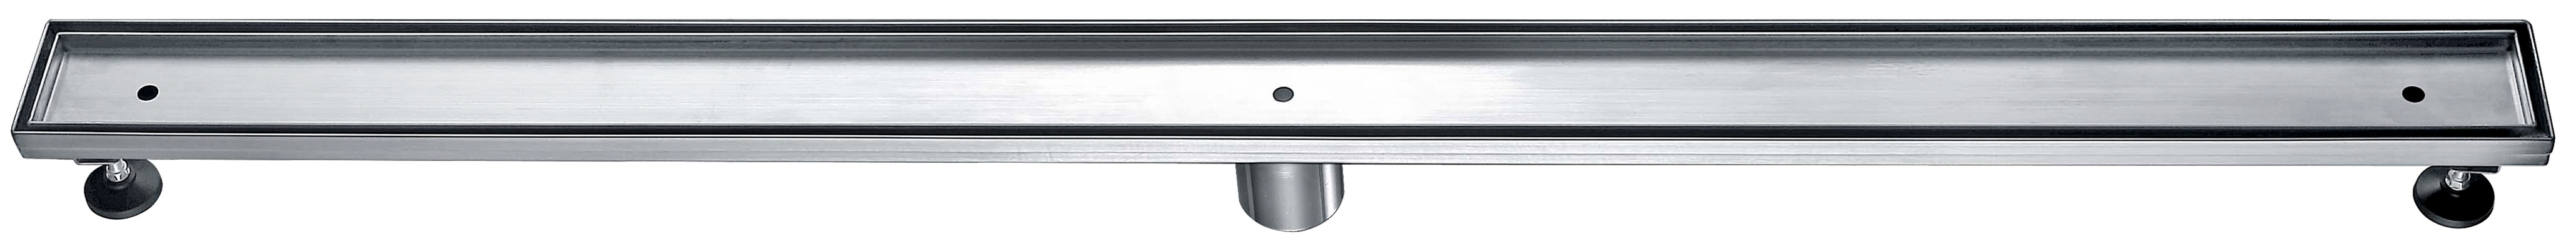 "Dawn® LCO470304 Colorado River Series Linear Shower Drain 47""L In Polished Satin"